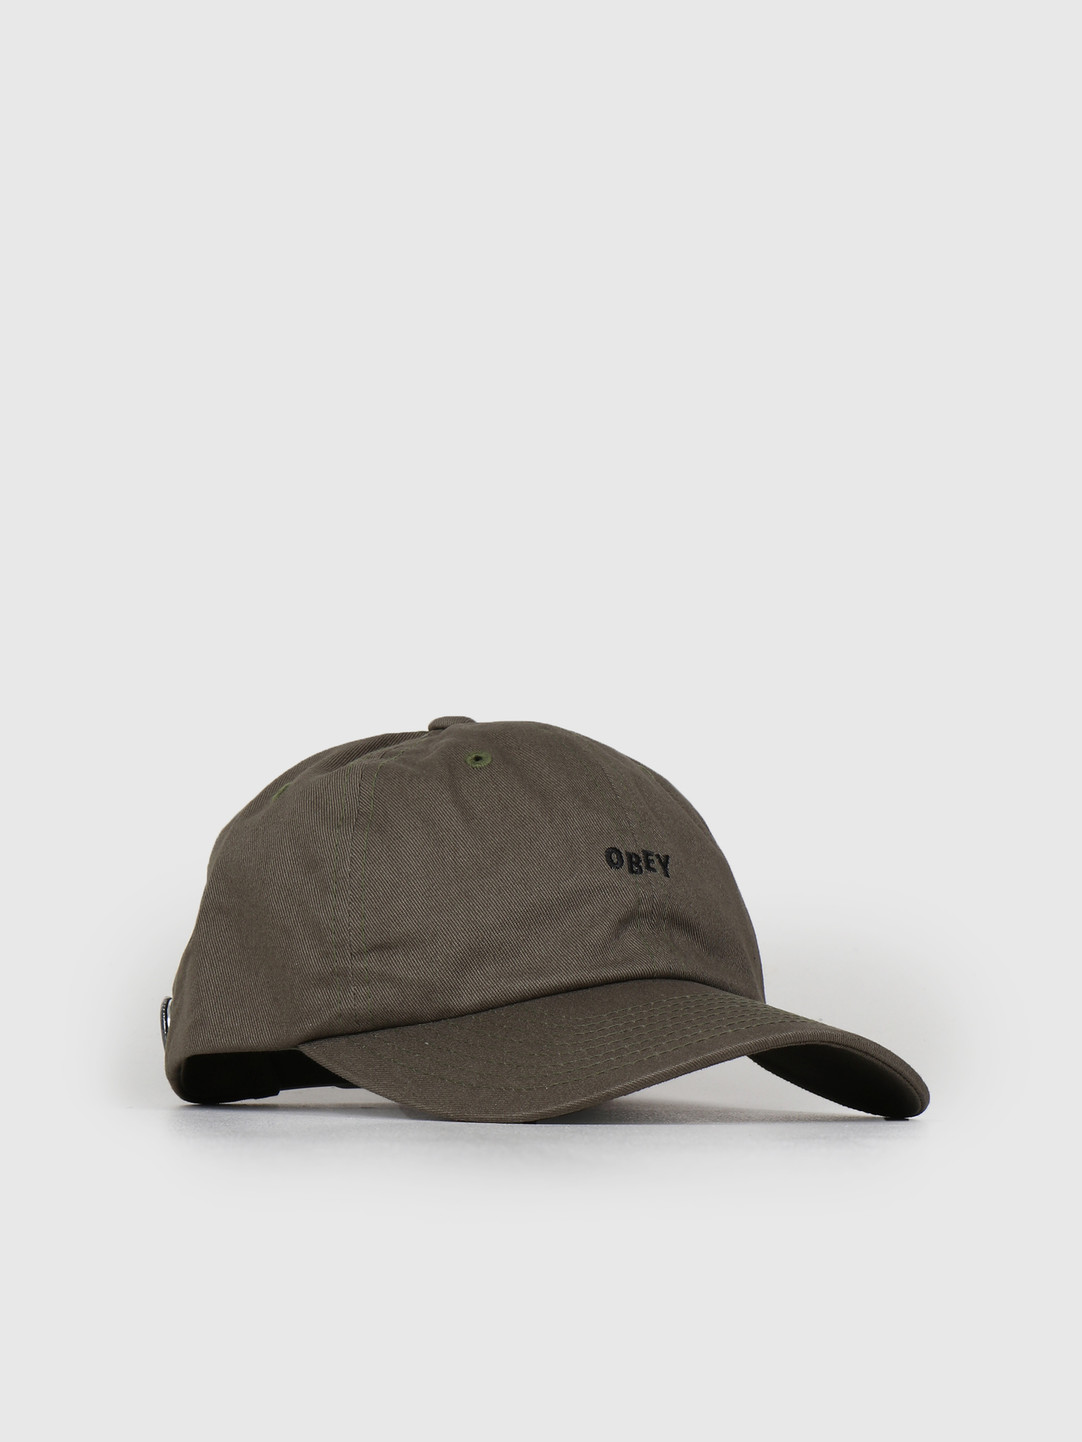 Obey Obey Cutty 6 Panel Snapback ARM 100580074